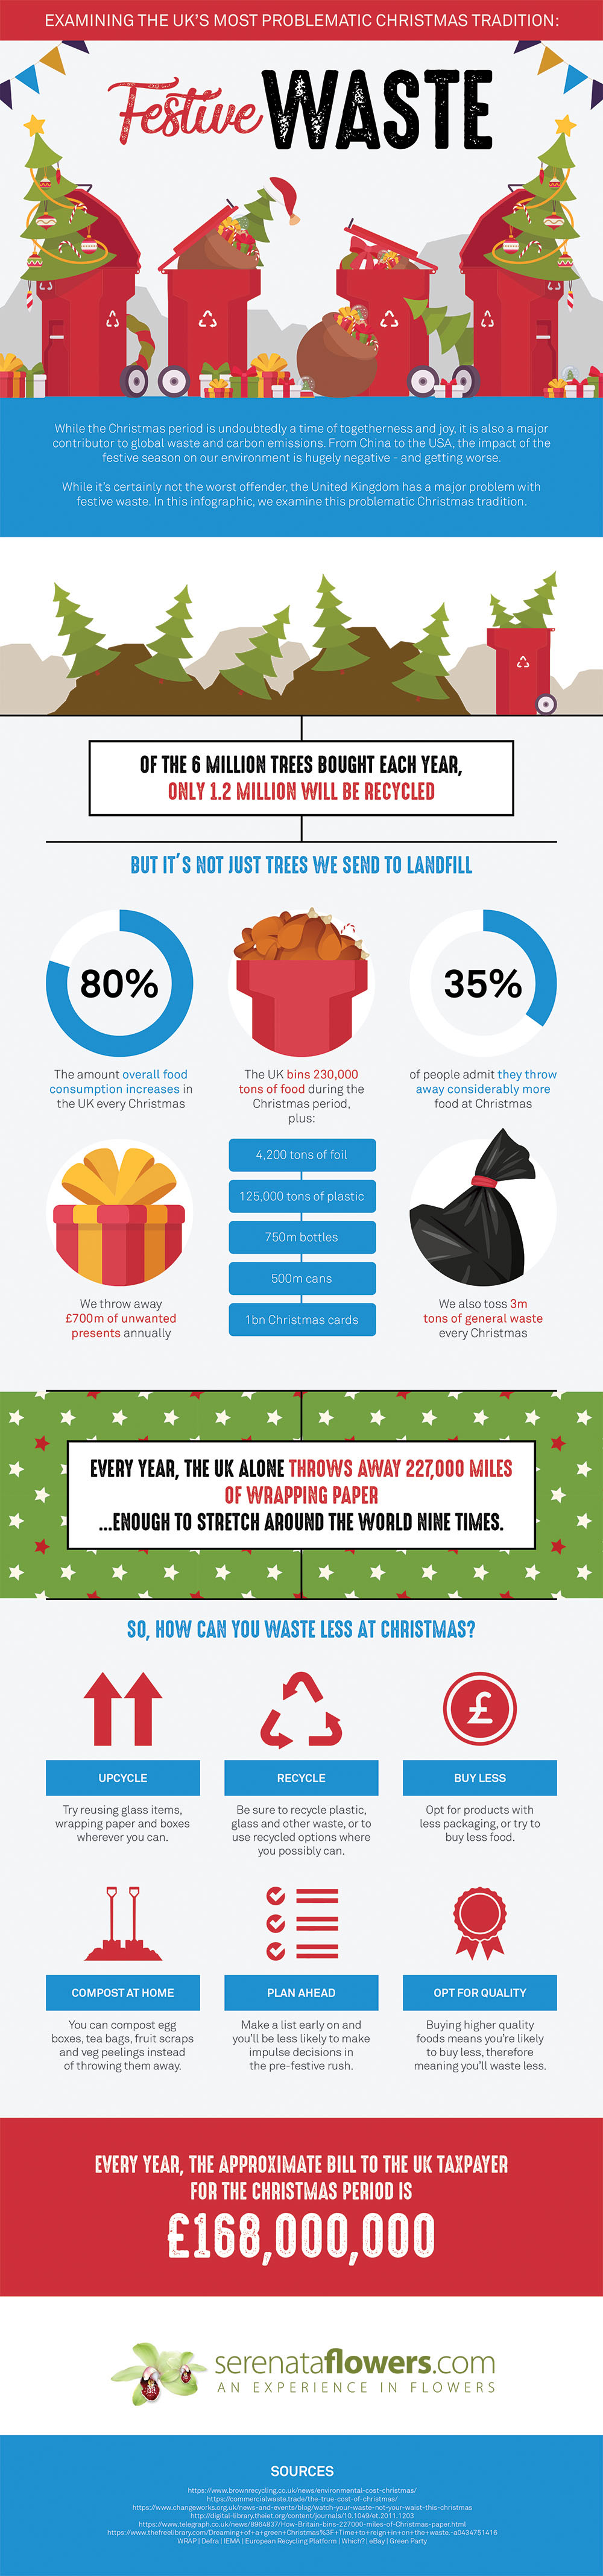 UK Festive Waste infographic, Serenata Flowers